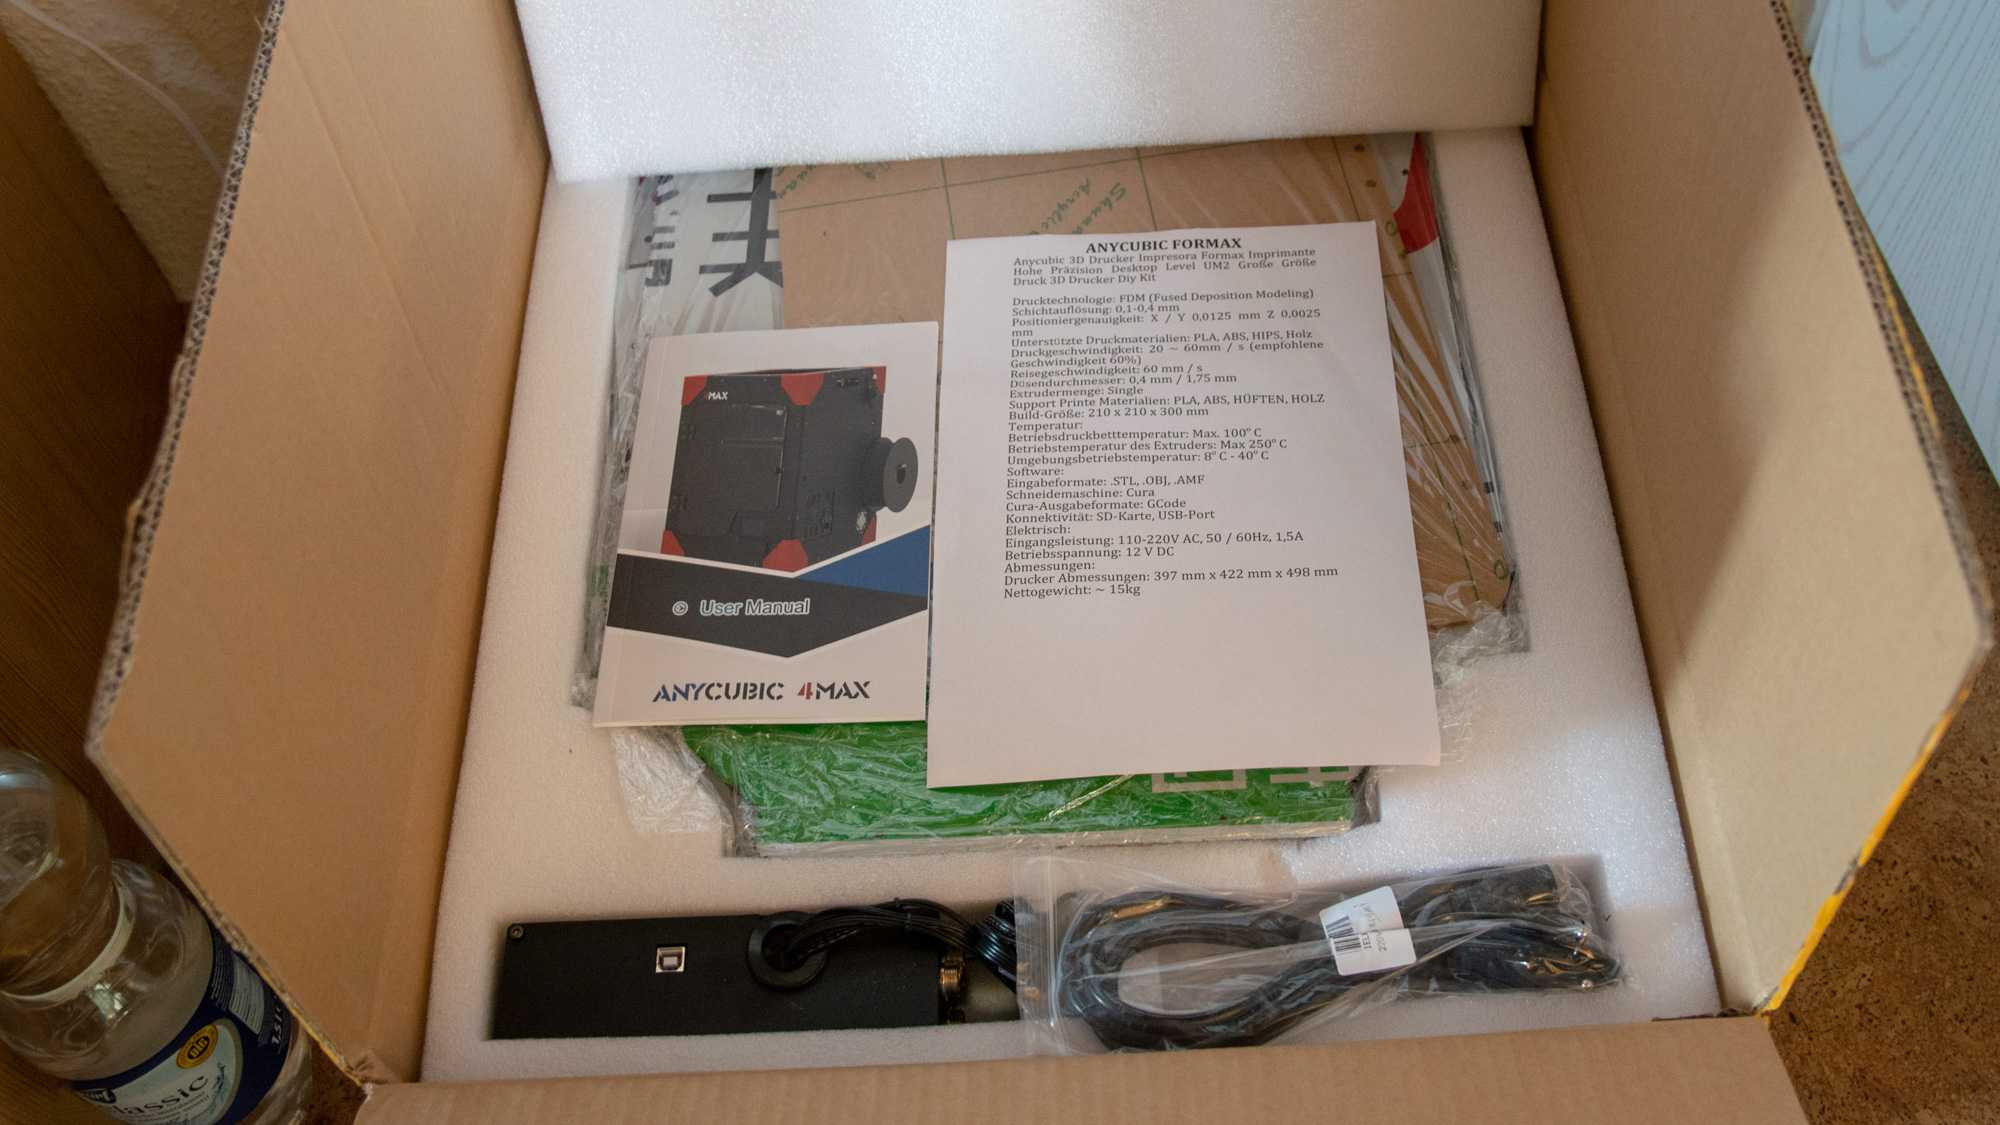 The Anycubic 4max 3d Printer Electronic Telescope